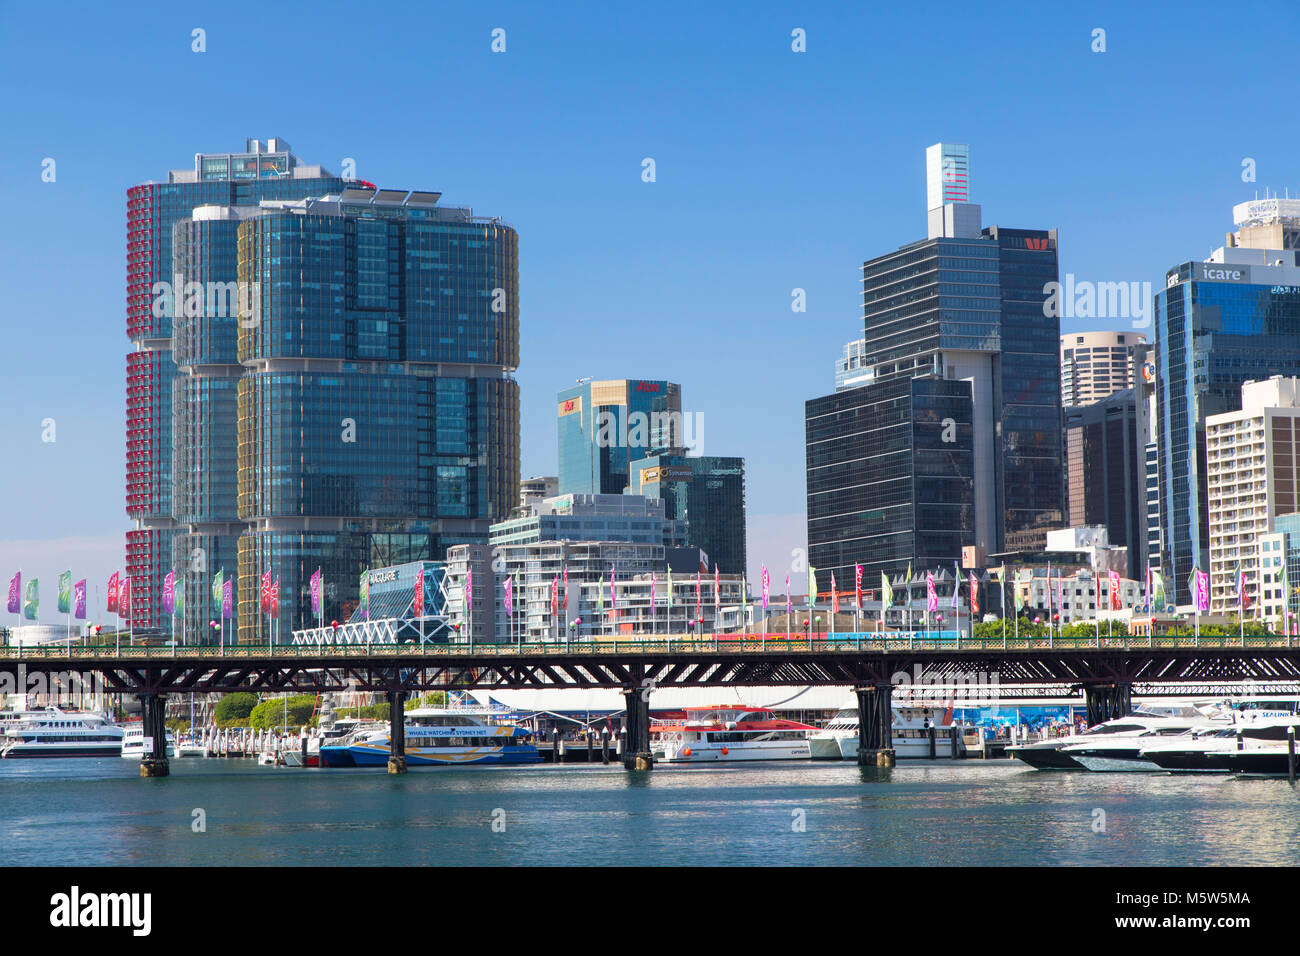 Barangaroo and Darling Harbour, Sydney, New South Wales, Australia - Stock Image